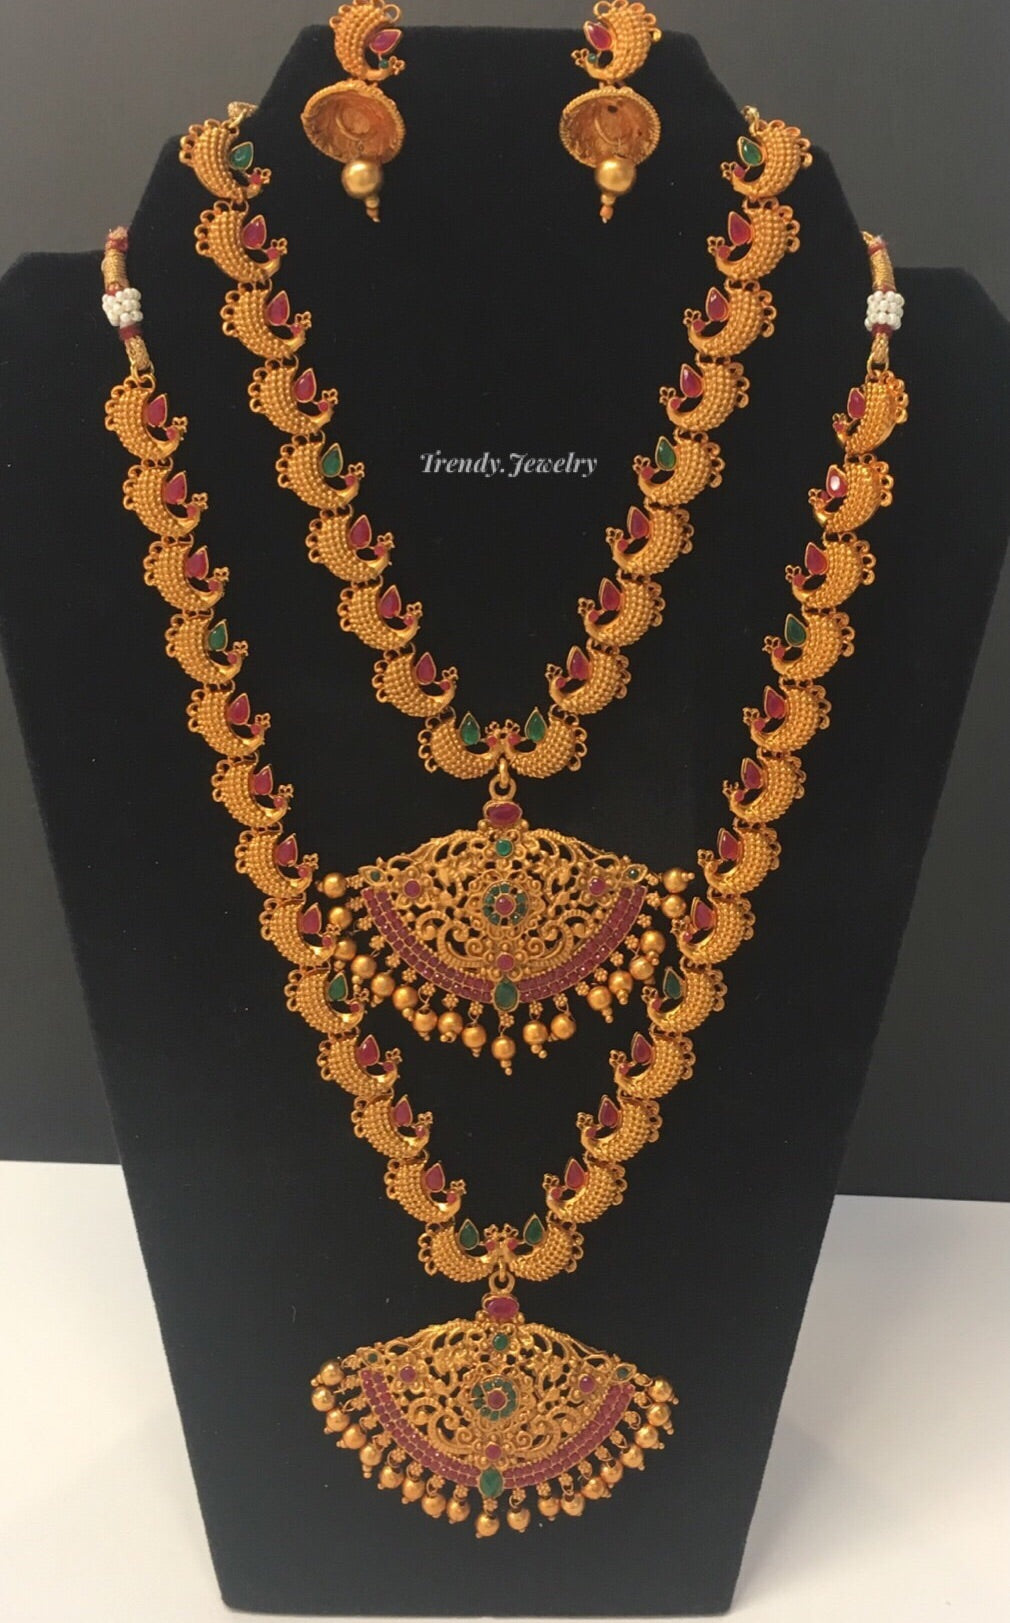 Bridal Antique Gold With Ruby Emerald Necklace Set Trendy Jewelry